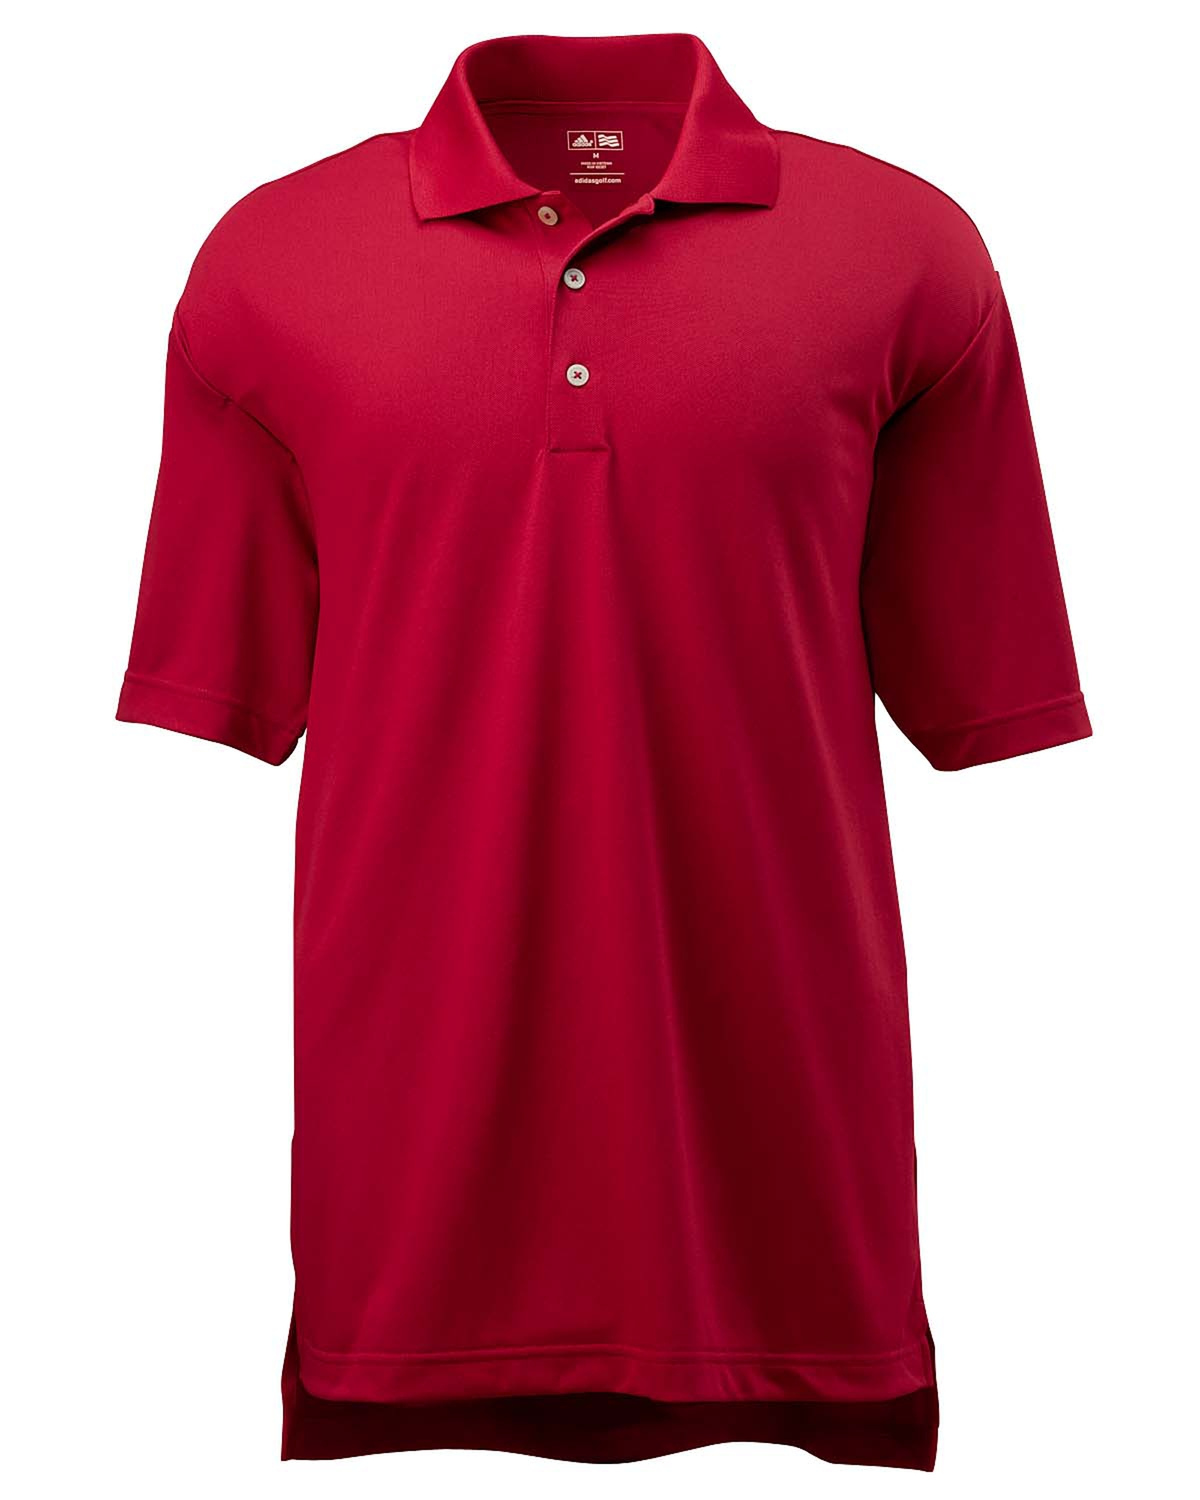 Men's climalite Short-Sleeve Piqué Polo